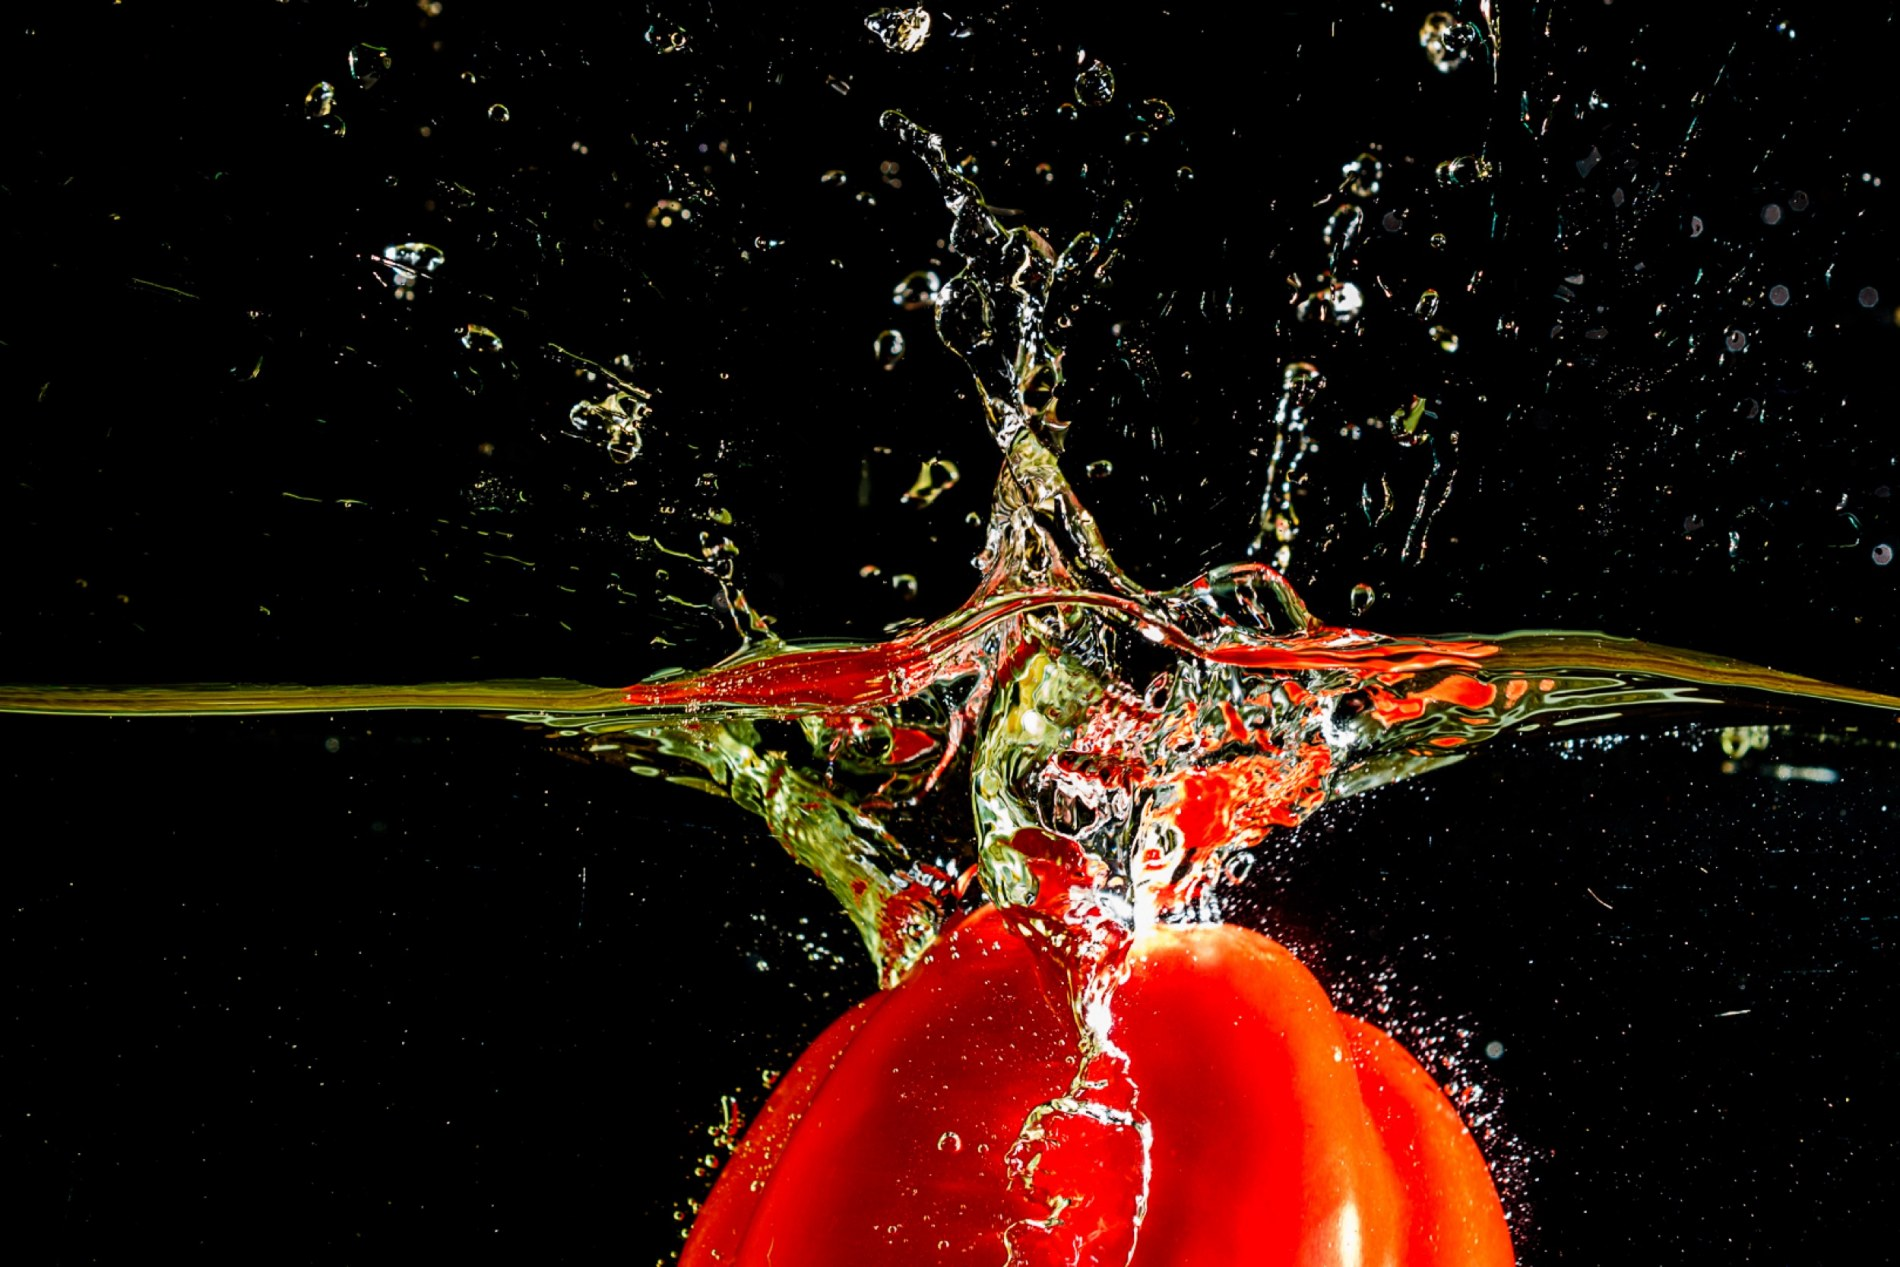 Rinie-20191206_rood_3553-water_2500px